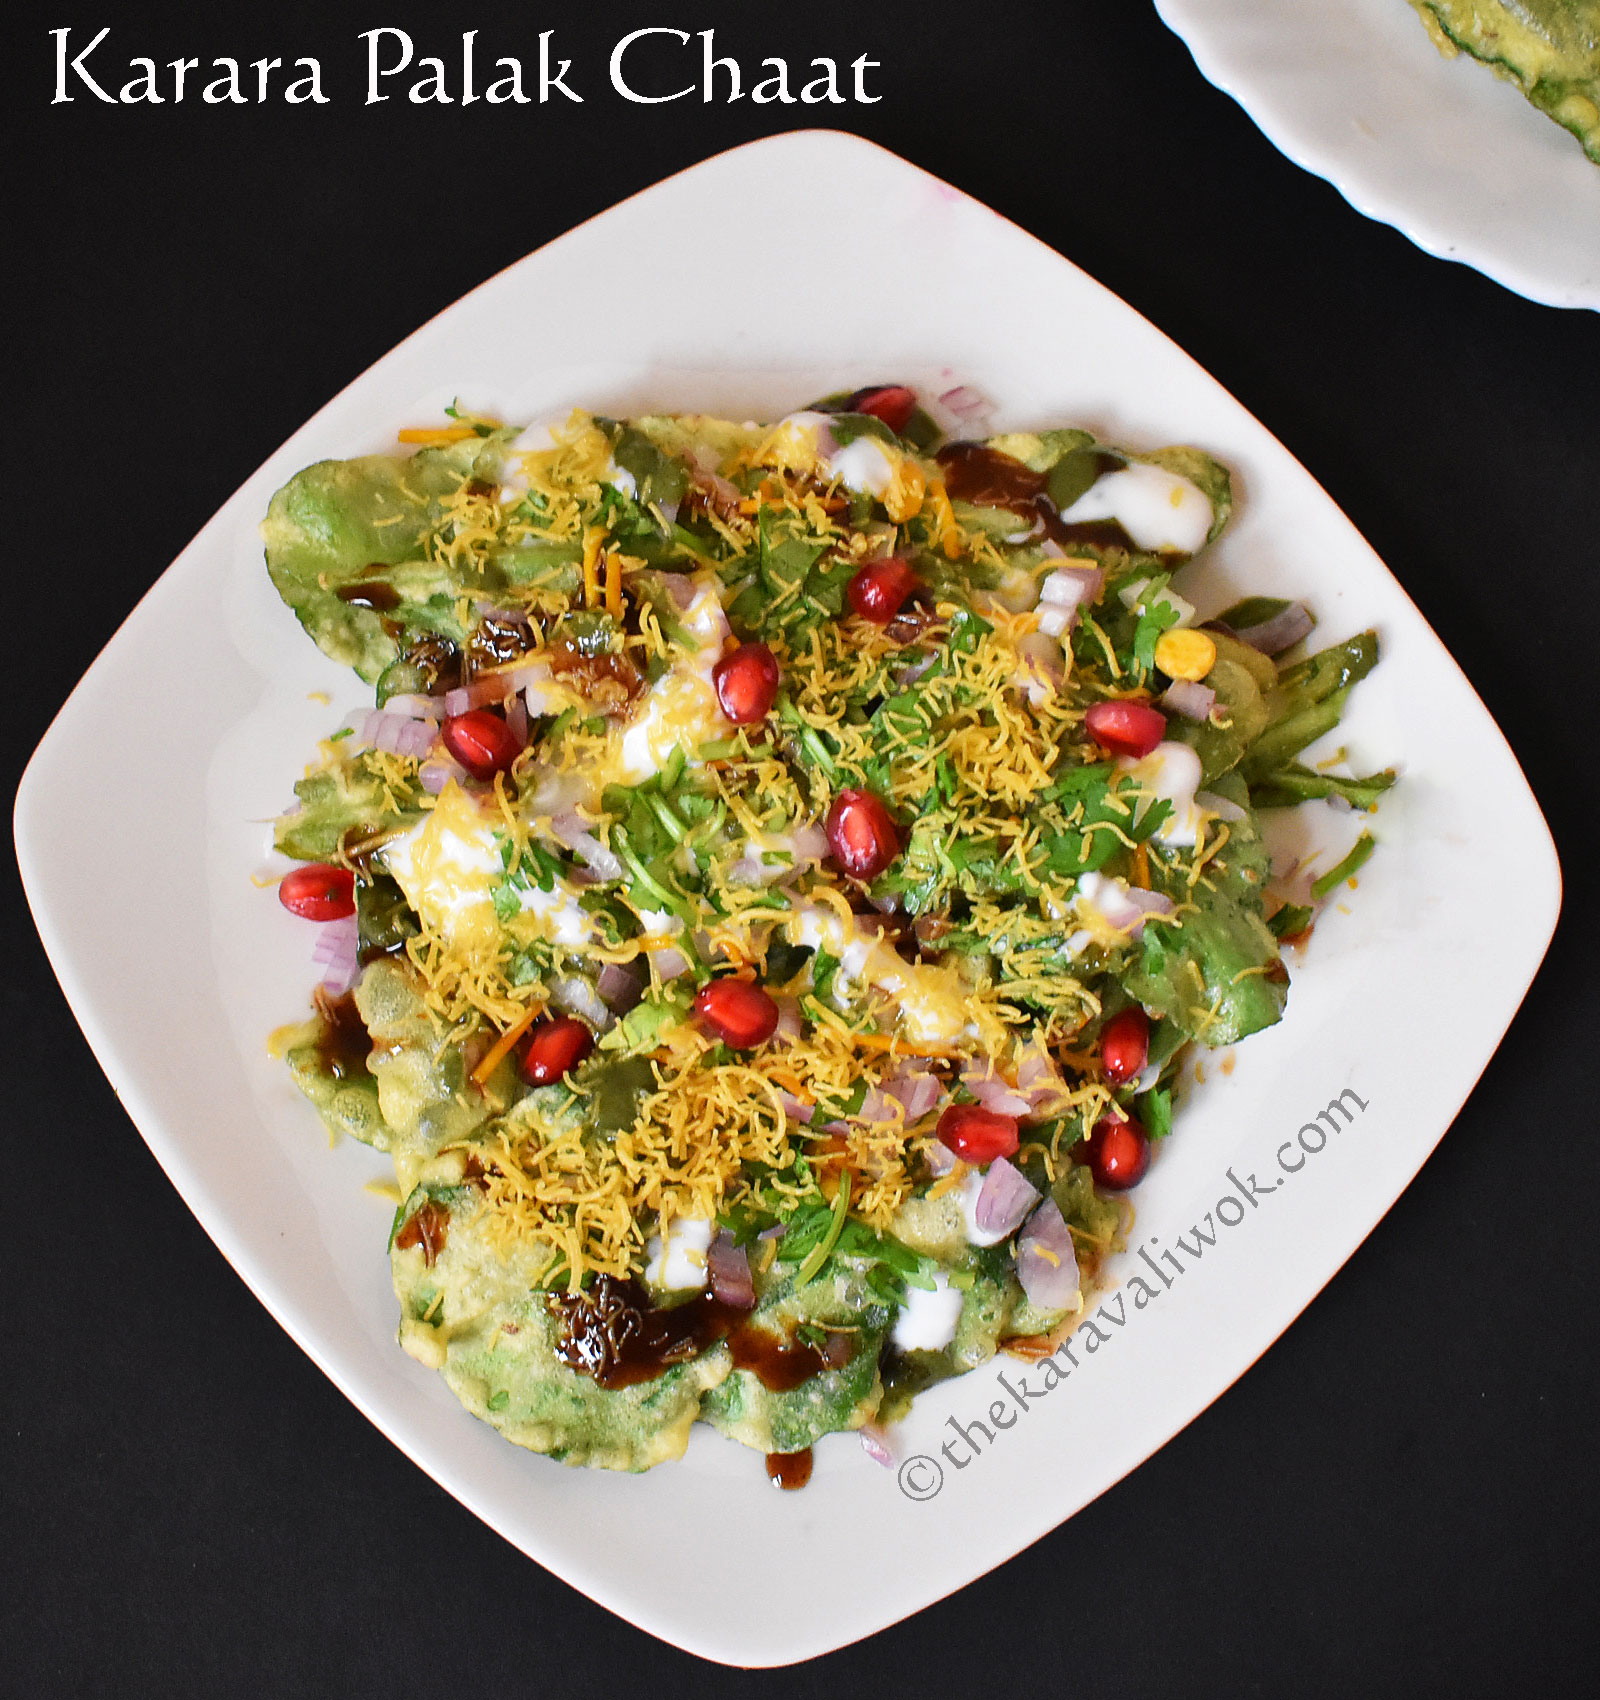 Karara Palak Chaat Recipe | Palak Pakora Chaat